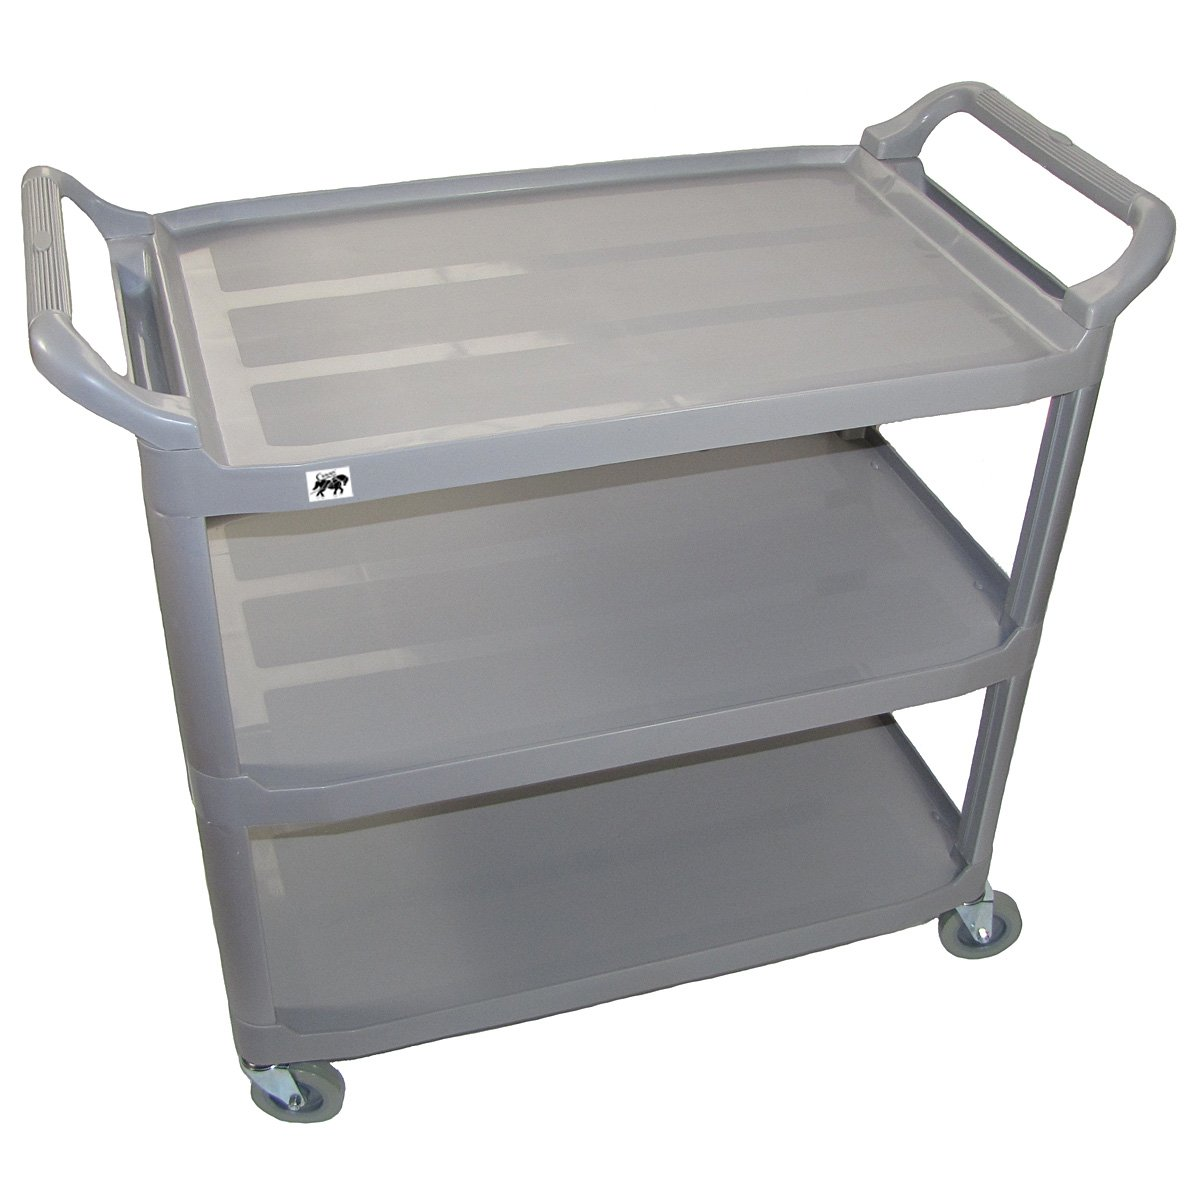 Crayata Serving and Bus Cart, Kitchen Food Service Utility Cart, 3 Tier Heavy Duty Plastic Beverage and Coffee Transport Cart for Restaurants, 400 Pound Capacity, Gray